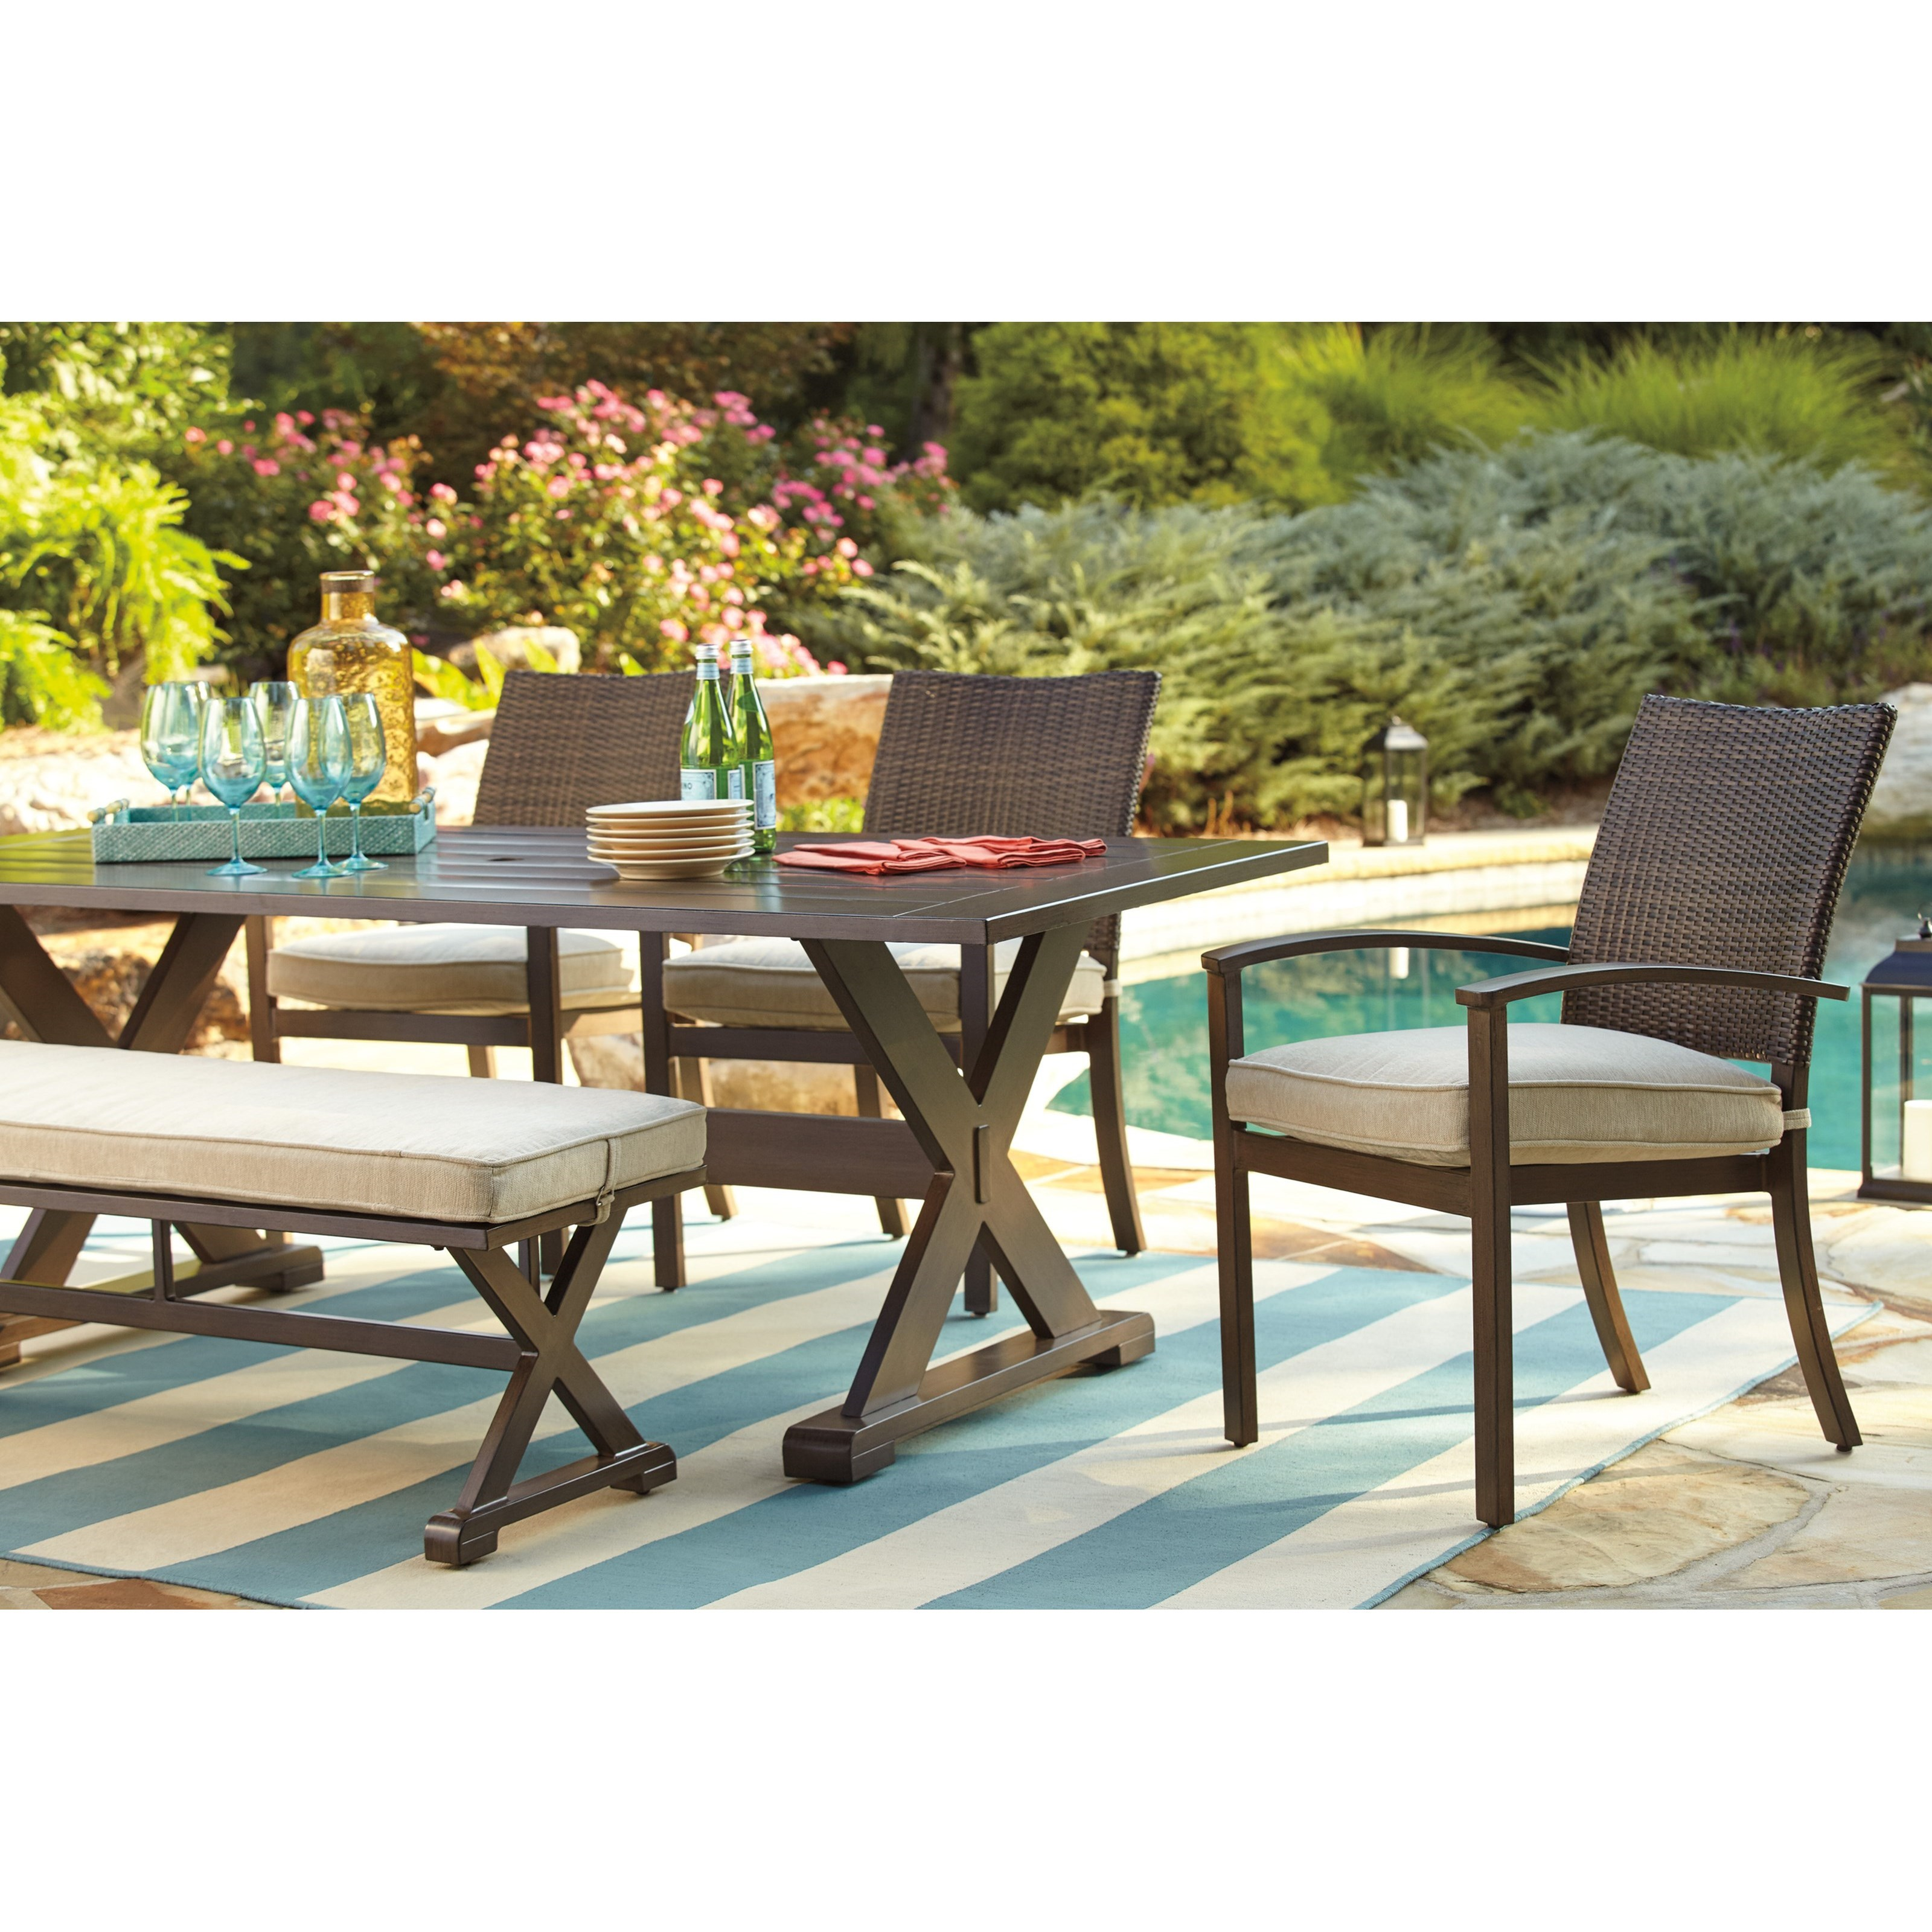 Ashley Signature Design Moresdale Set Of 4 Outdoor Chairs